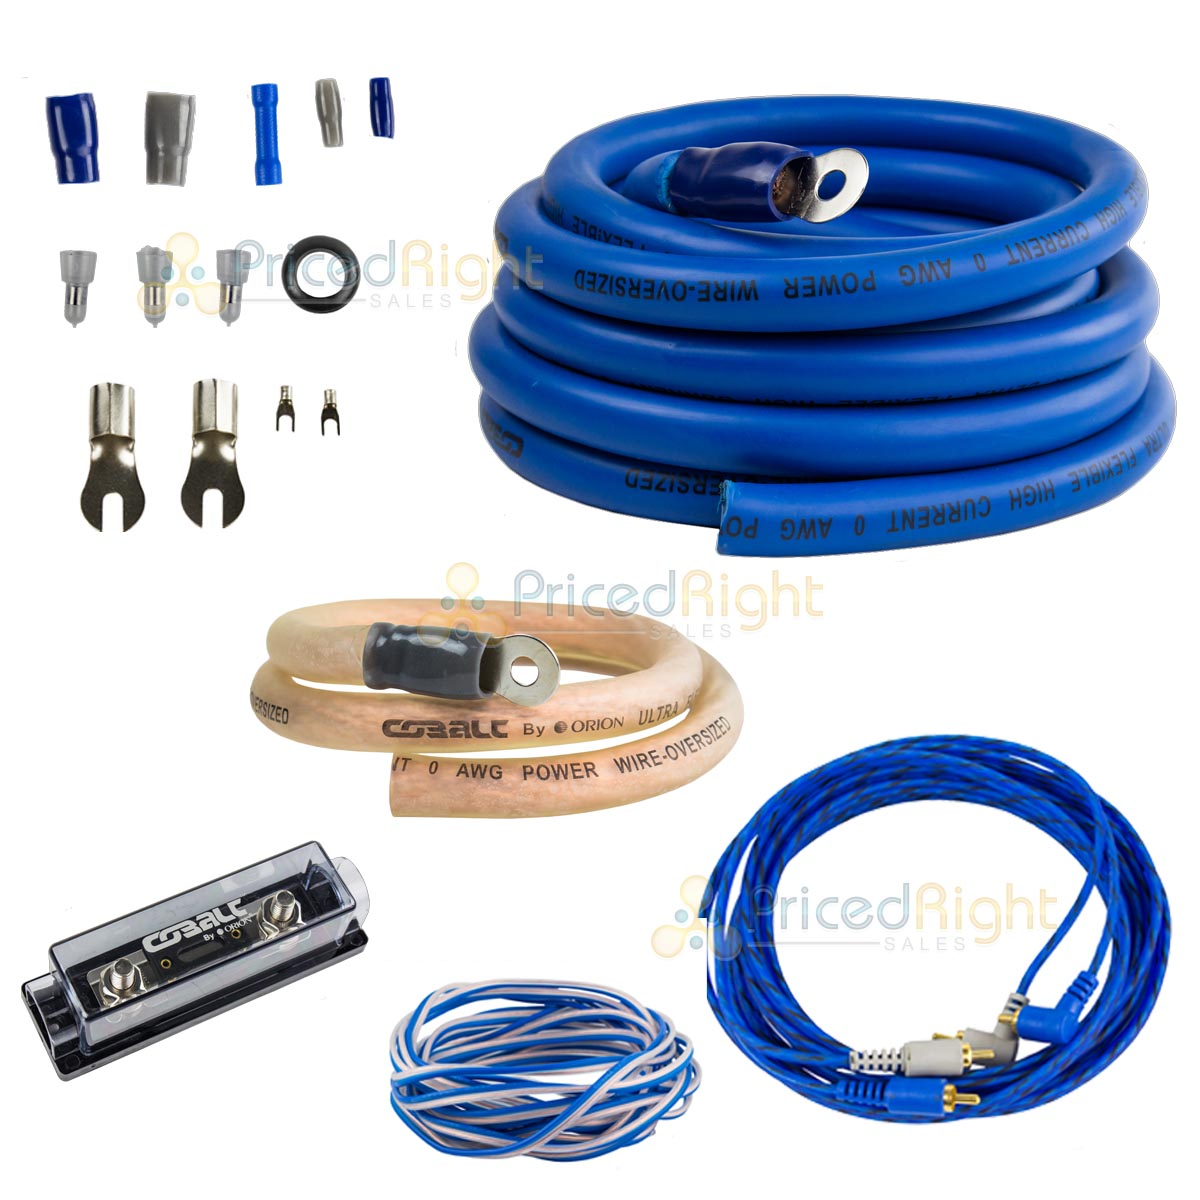 0 Gauge Amp Install Kit 6500w Car Audio Amplifier Over Sized Wire Wiring Cables